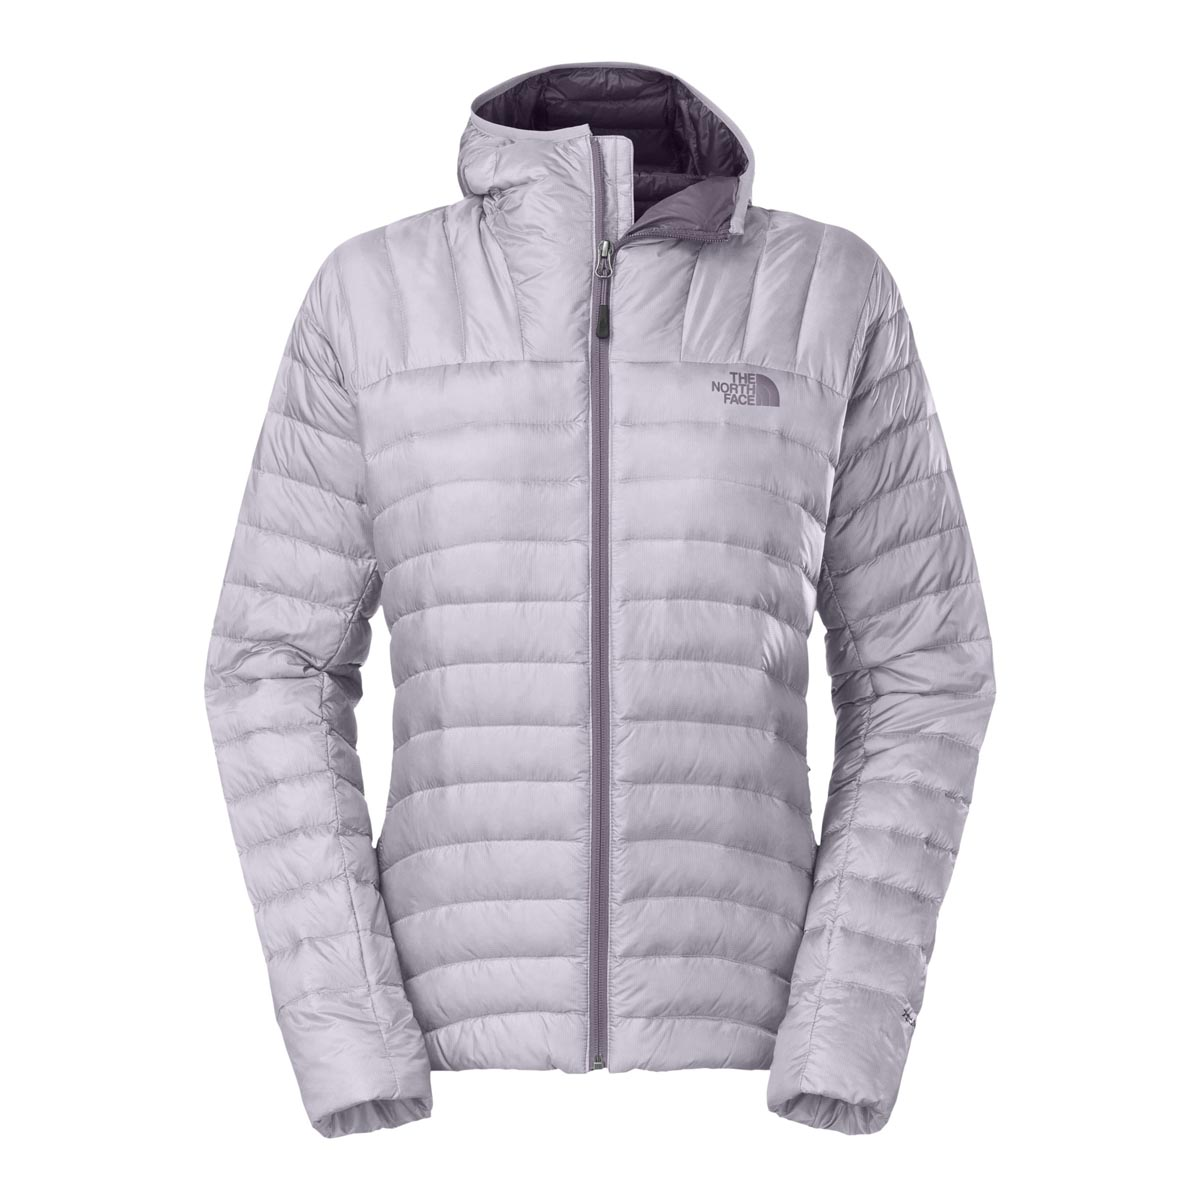 8bdc70b2443f The North Face Women s Tonnerro Hooded Jacket